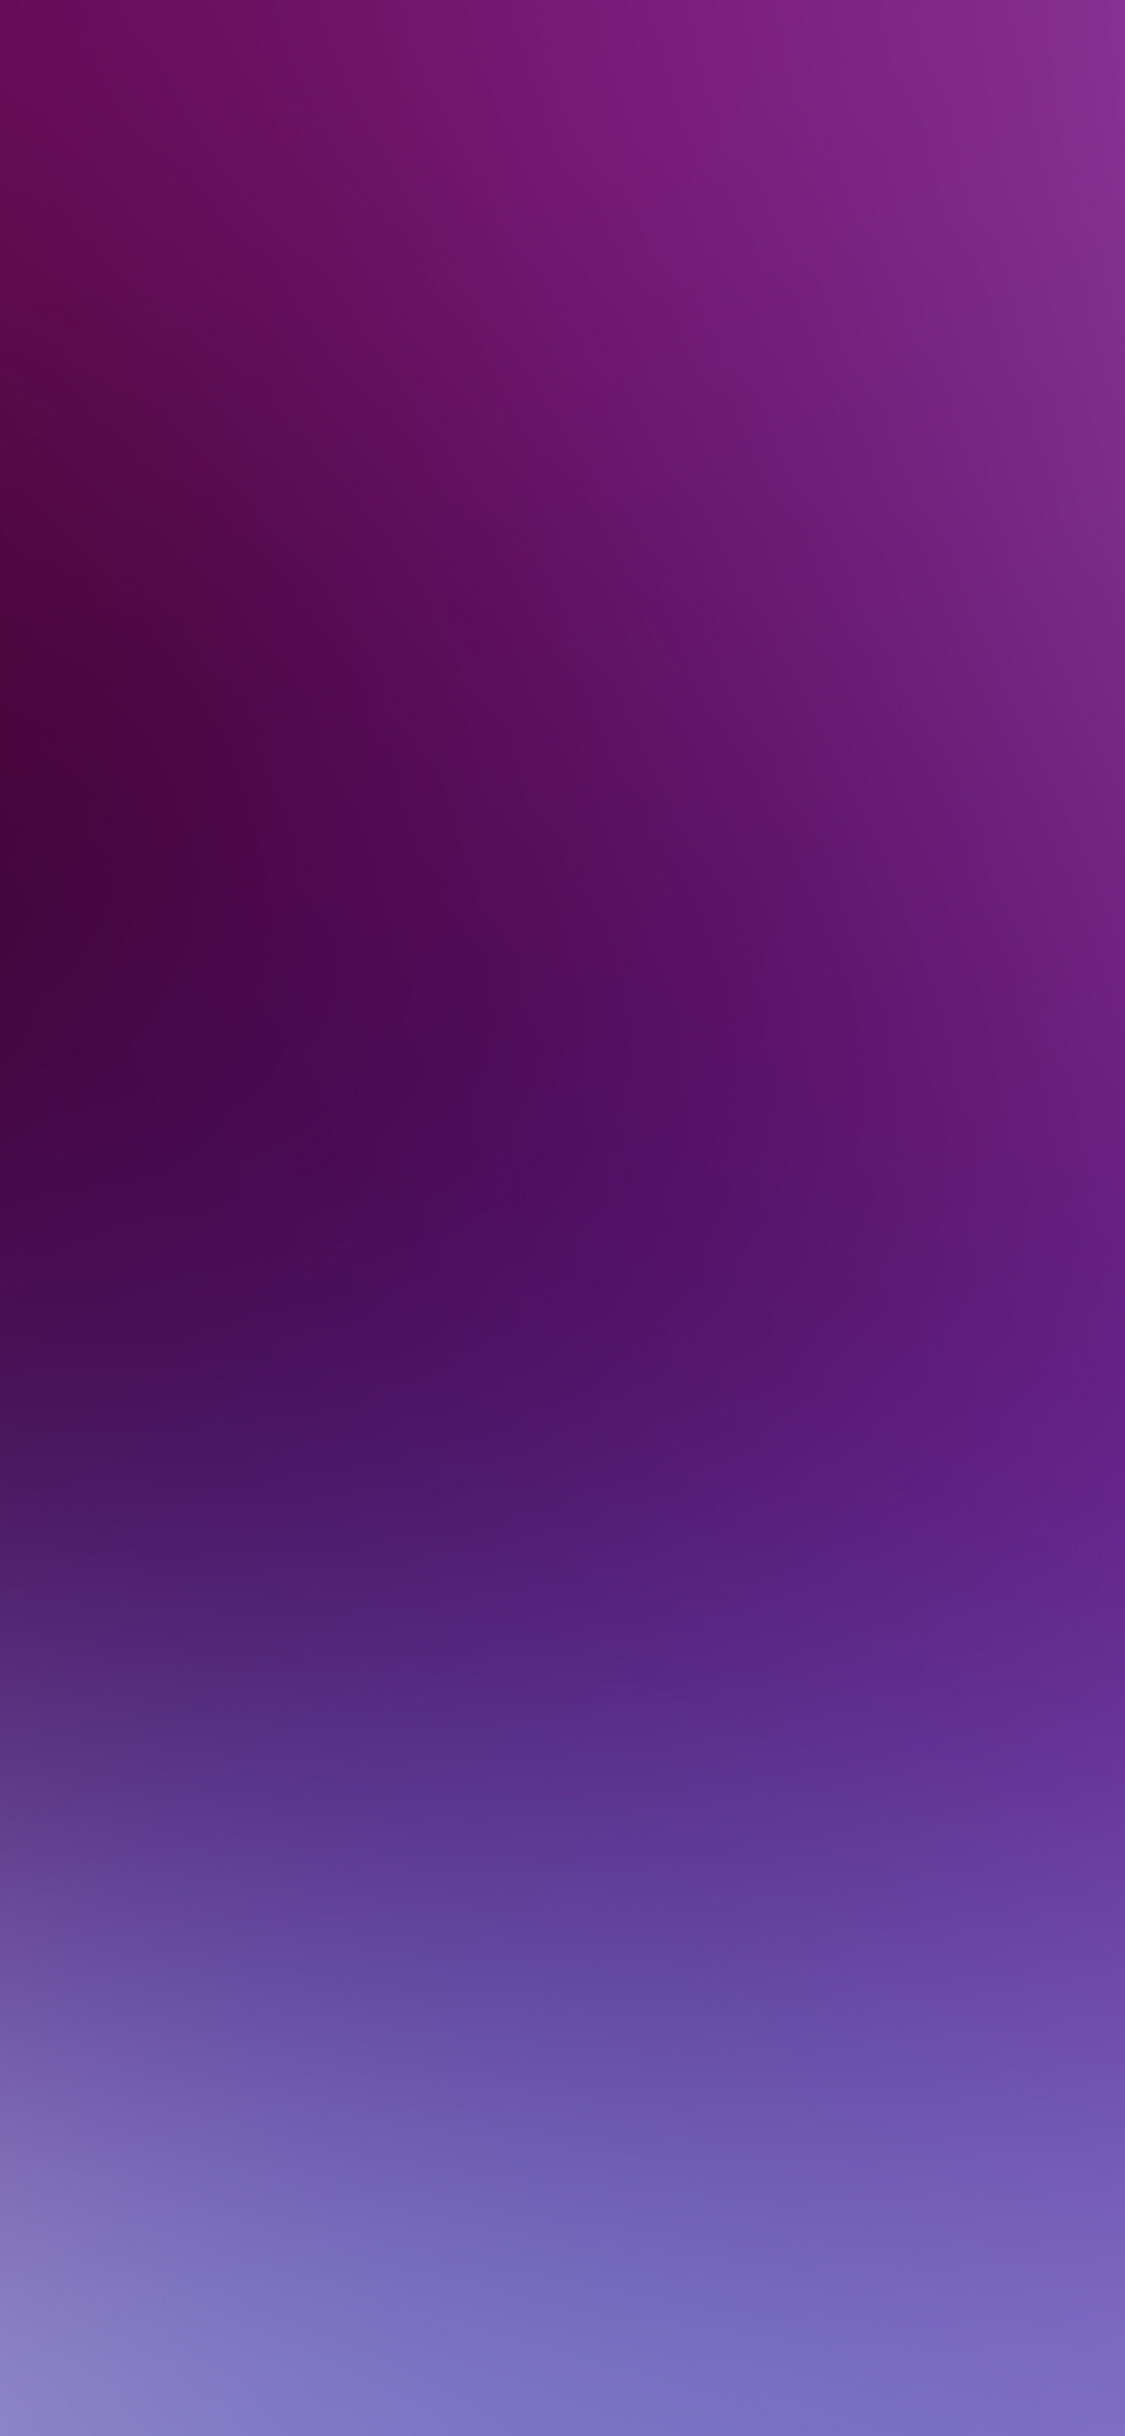 iPhoneXpapers.com-Apple-iPhone-wallpaper-sd58-purple-rush-dragon-gradation-blur